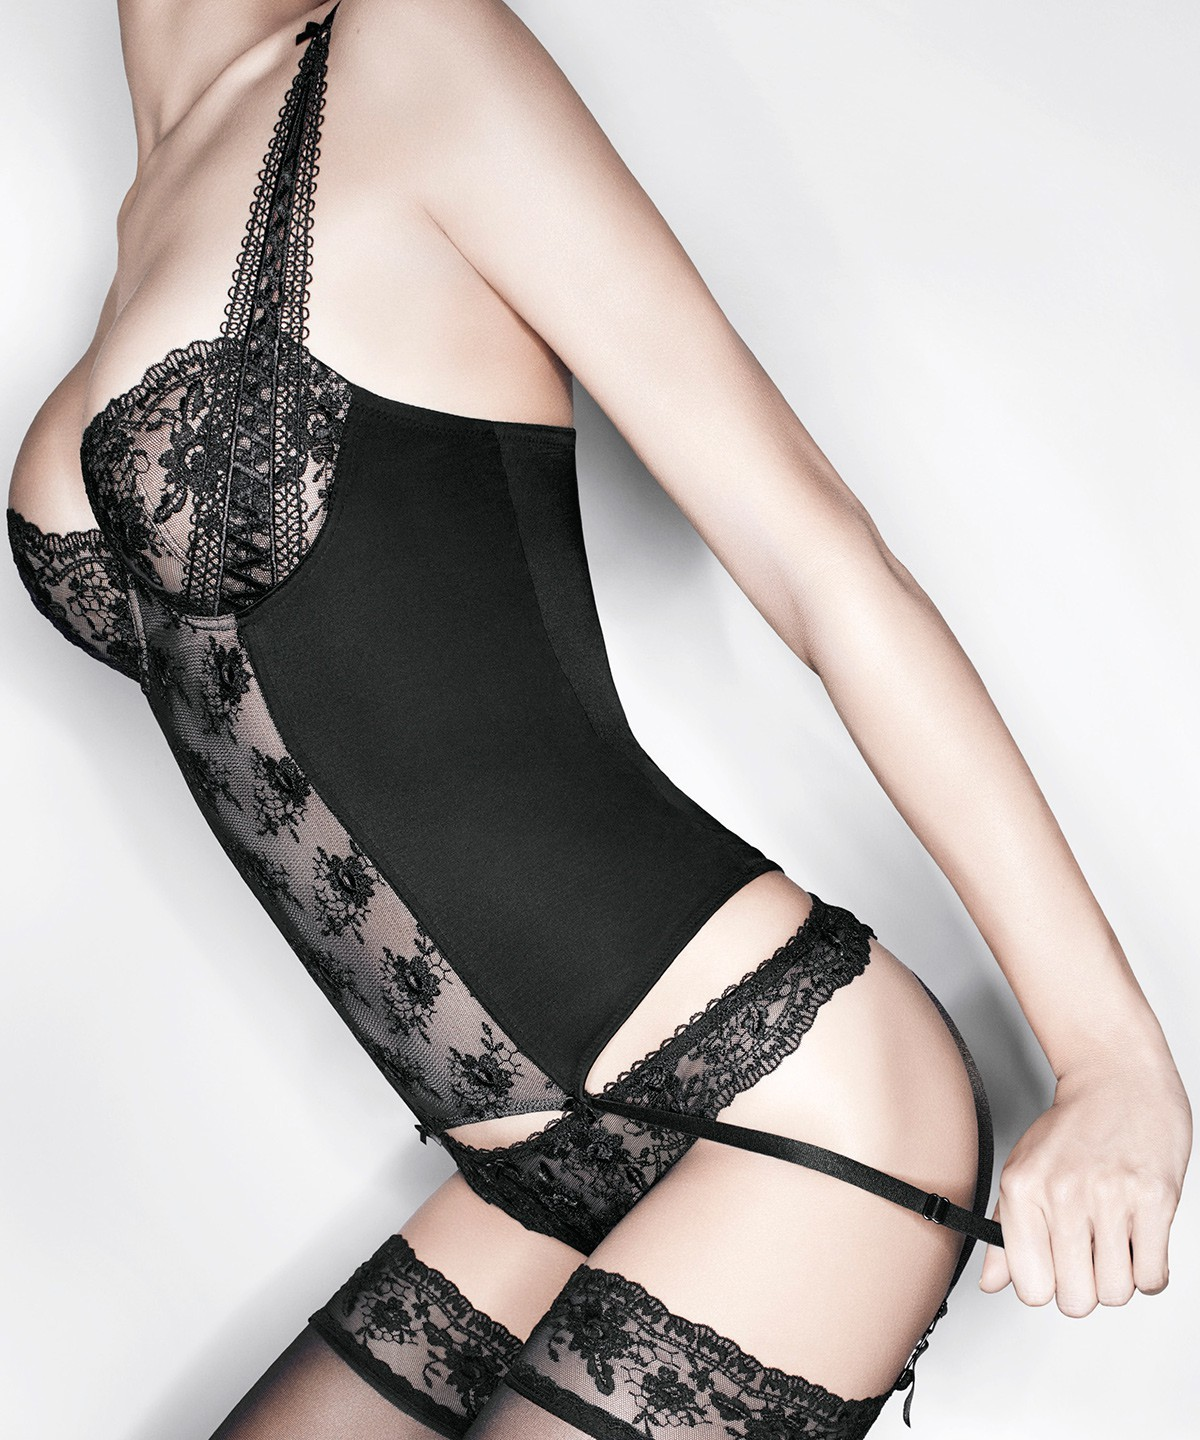 French Passionate Night with Aubade Lingerie  b3edd8561